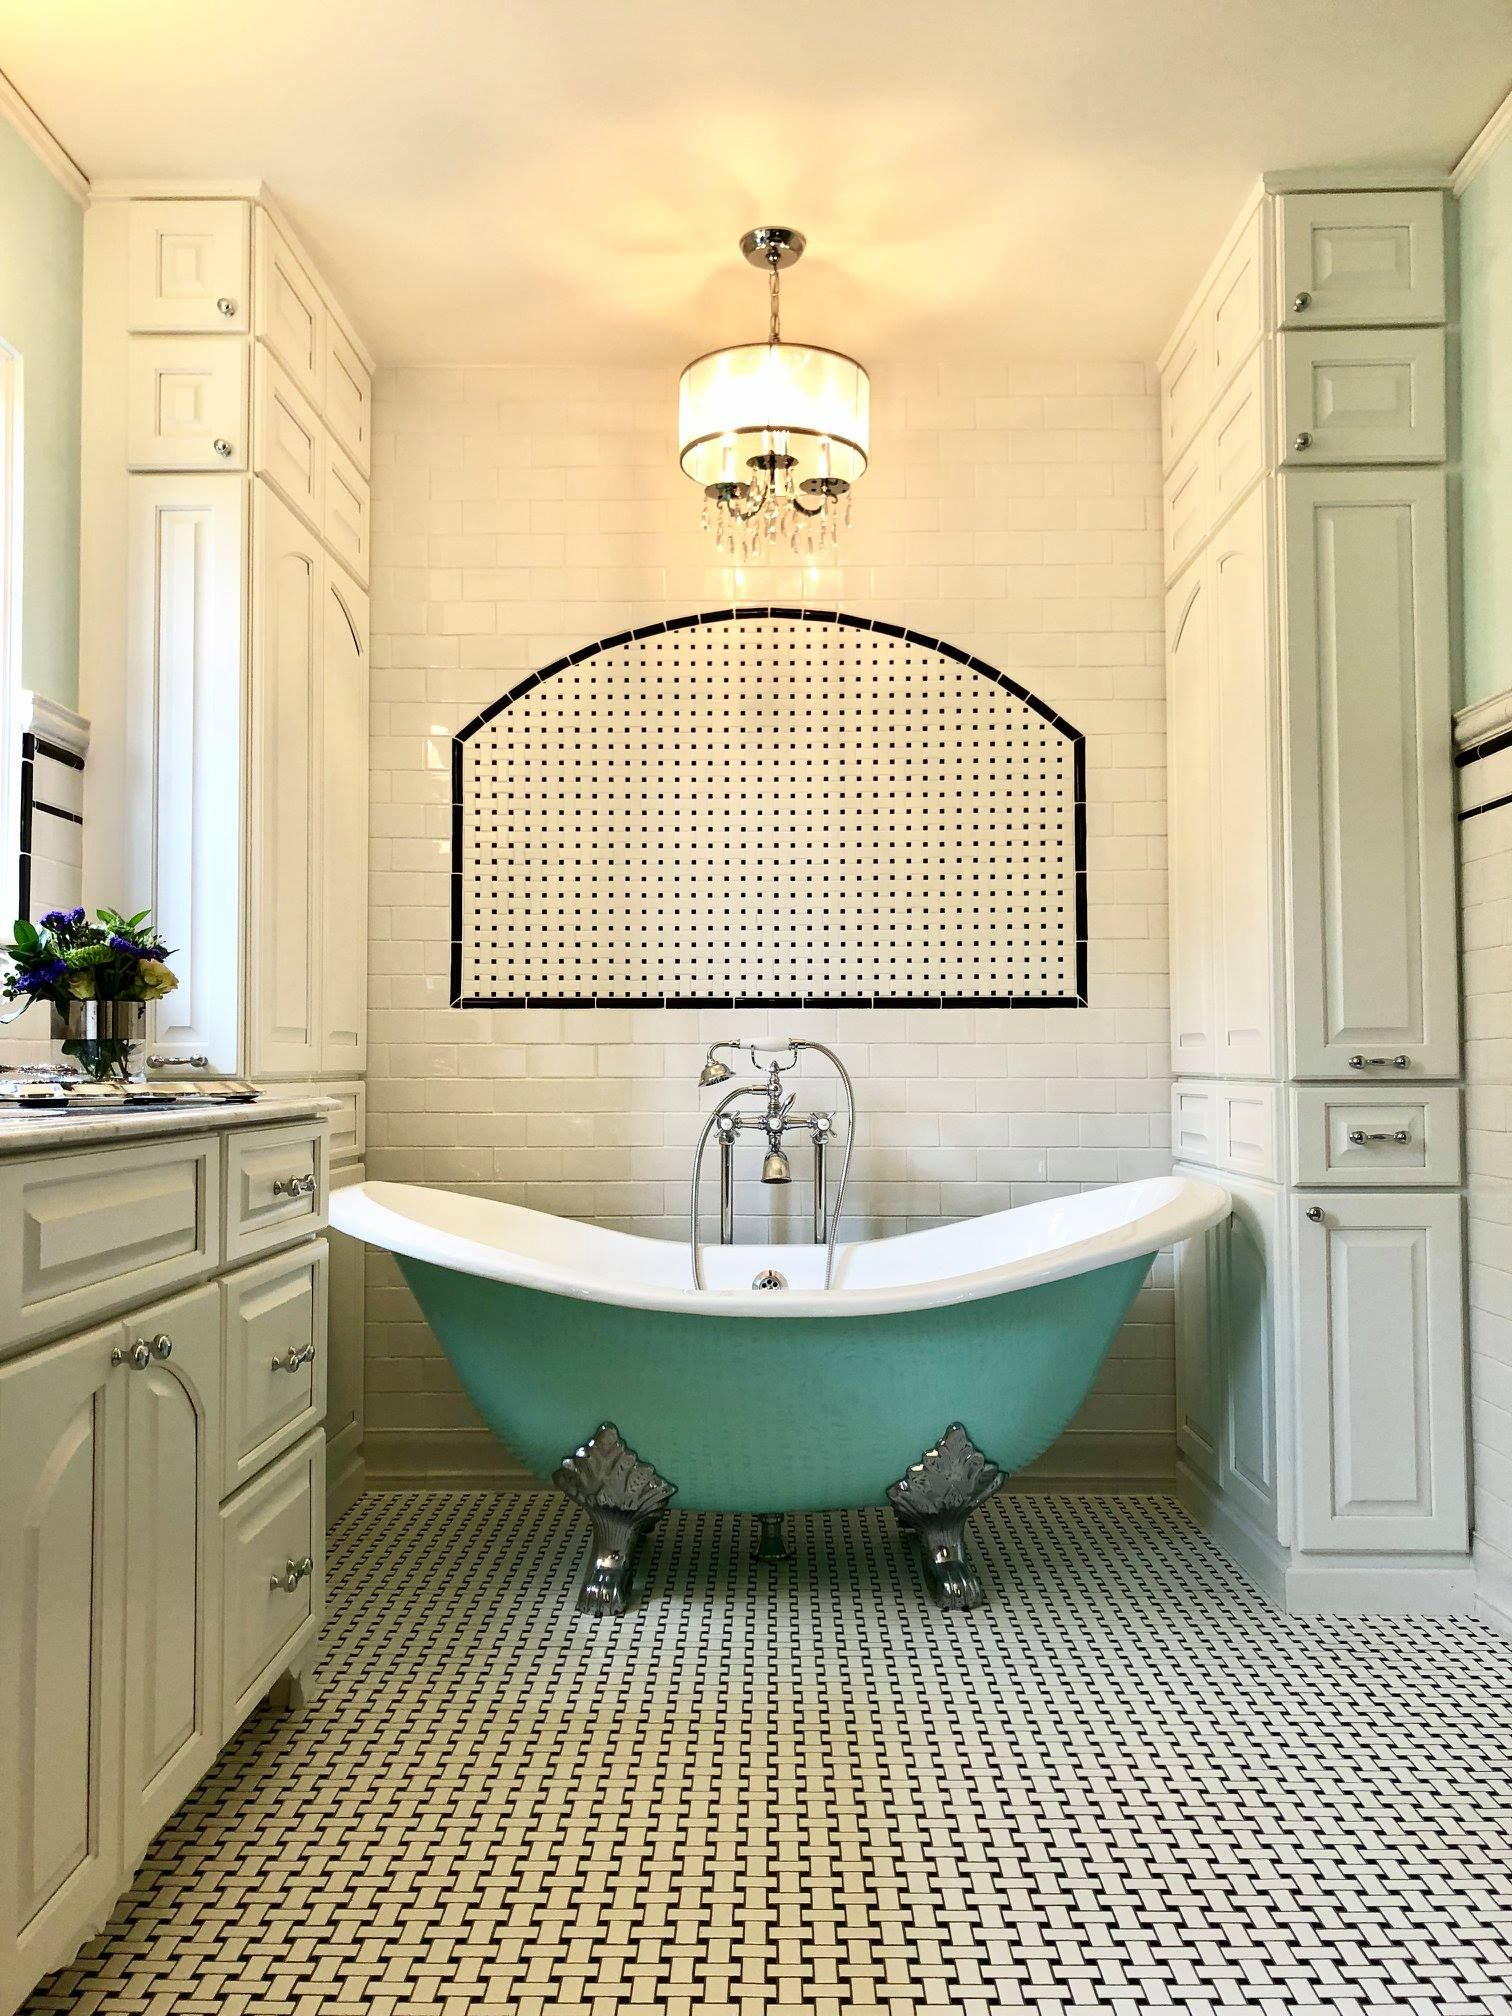 how to remove a cast iron tub from a small bathroom